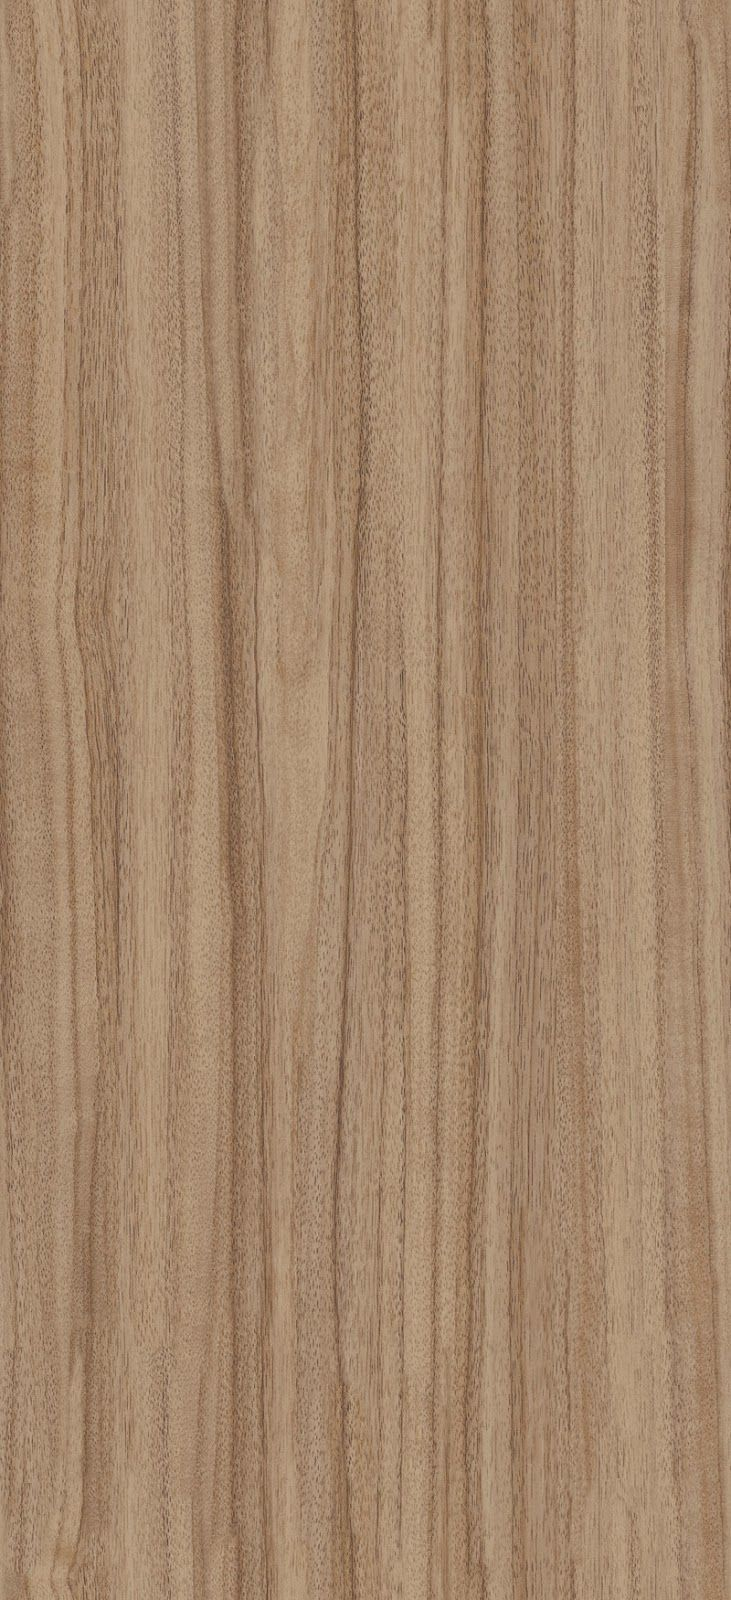 Seamless French Walnut Wood Texture   texturise. Best 25  Wood texture ideas on Pinterest   Wood background  Wood